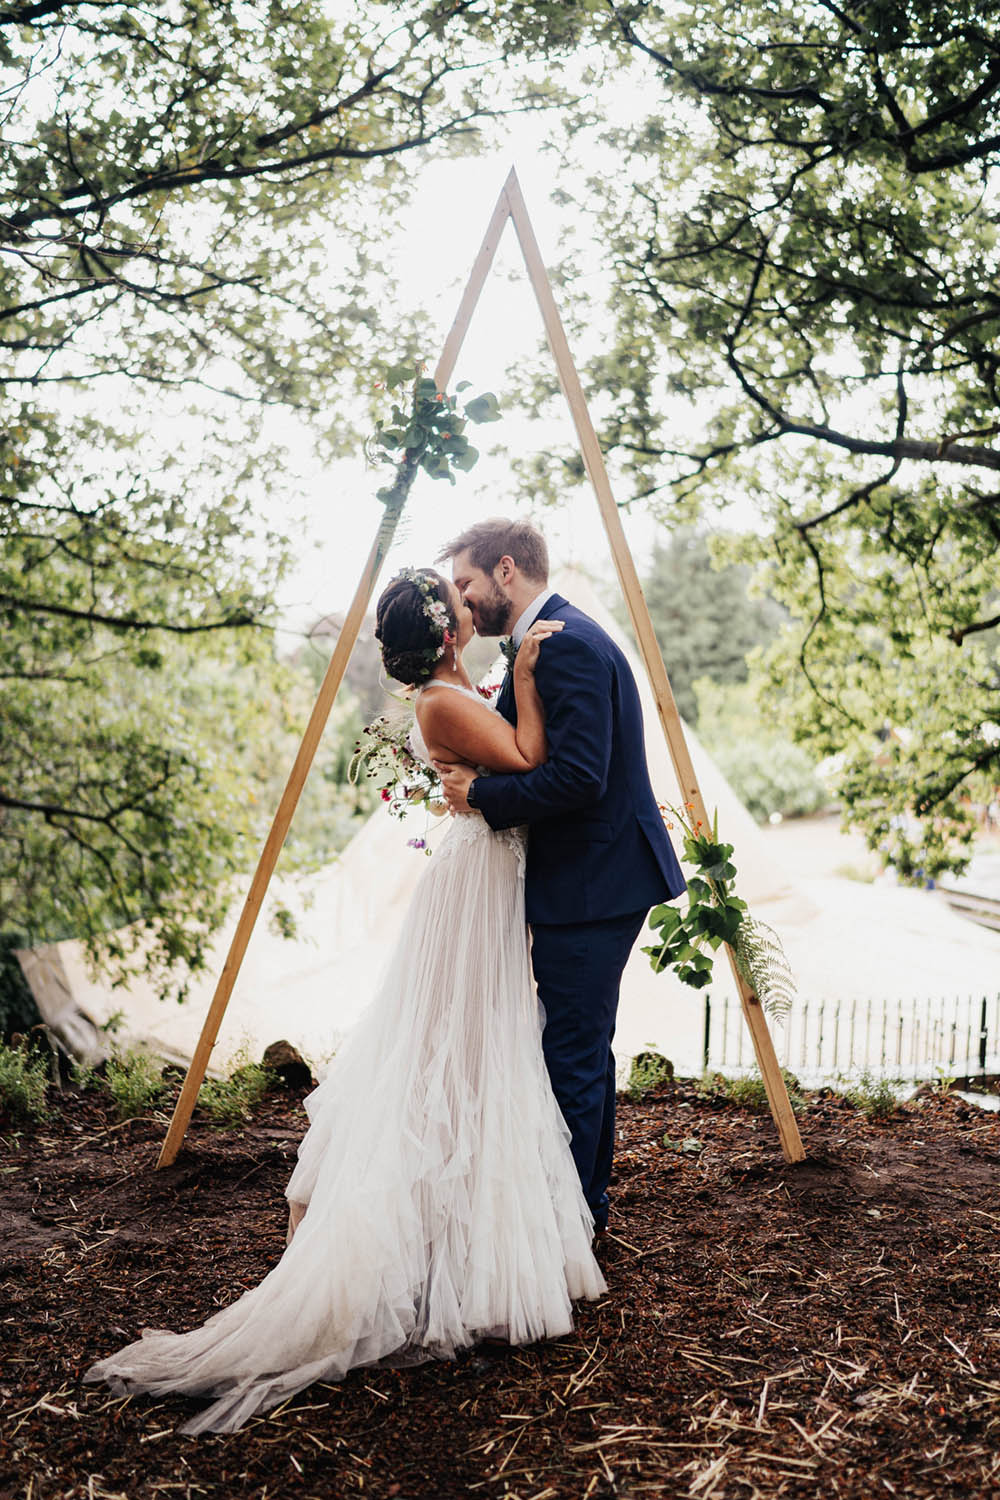 Bride Bridal Dress Gown Tipi Garden Wedding Kit Myers Photography Tulle Lace High Neckline Ruffle Skirt Tipi Garden Wedding Kit Myers Photography